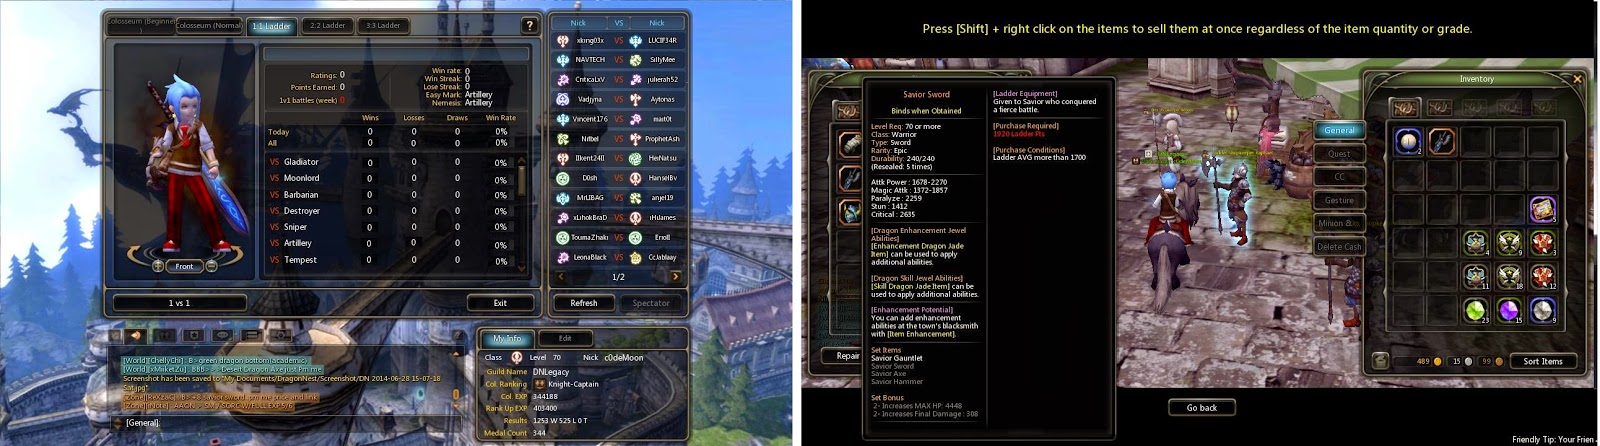 Dragon nest sea how to get weapon of darkness exchange coupon